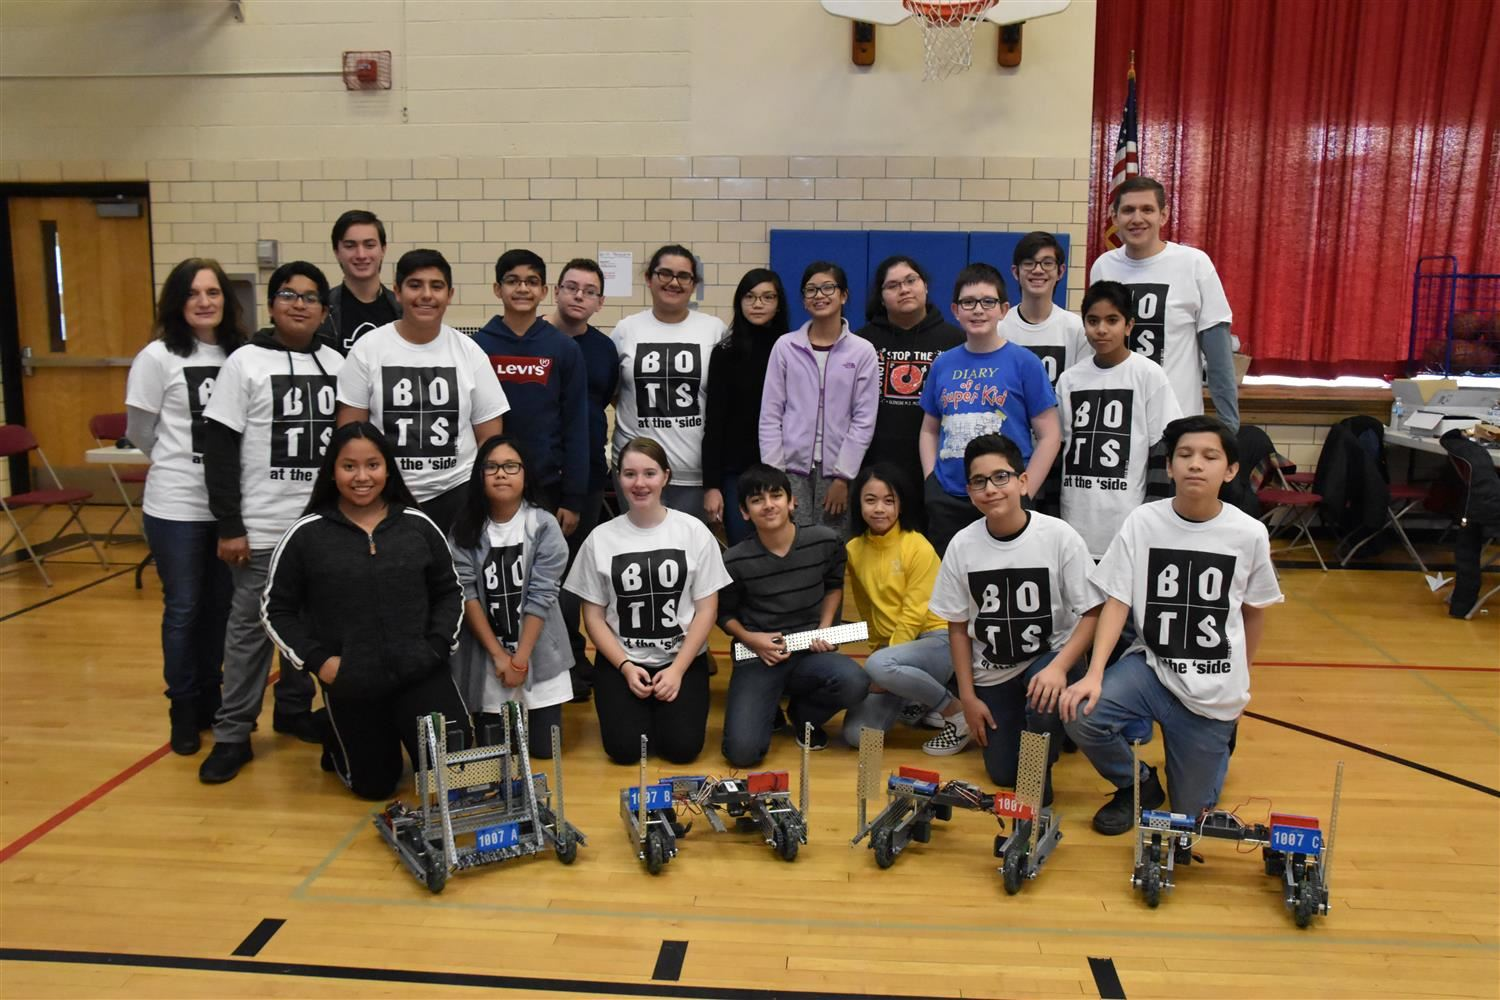 Robotics Team Takes 3rd Place in Competition